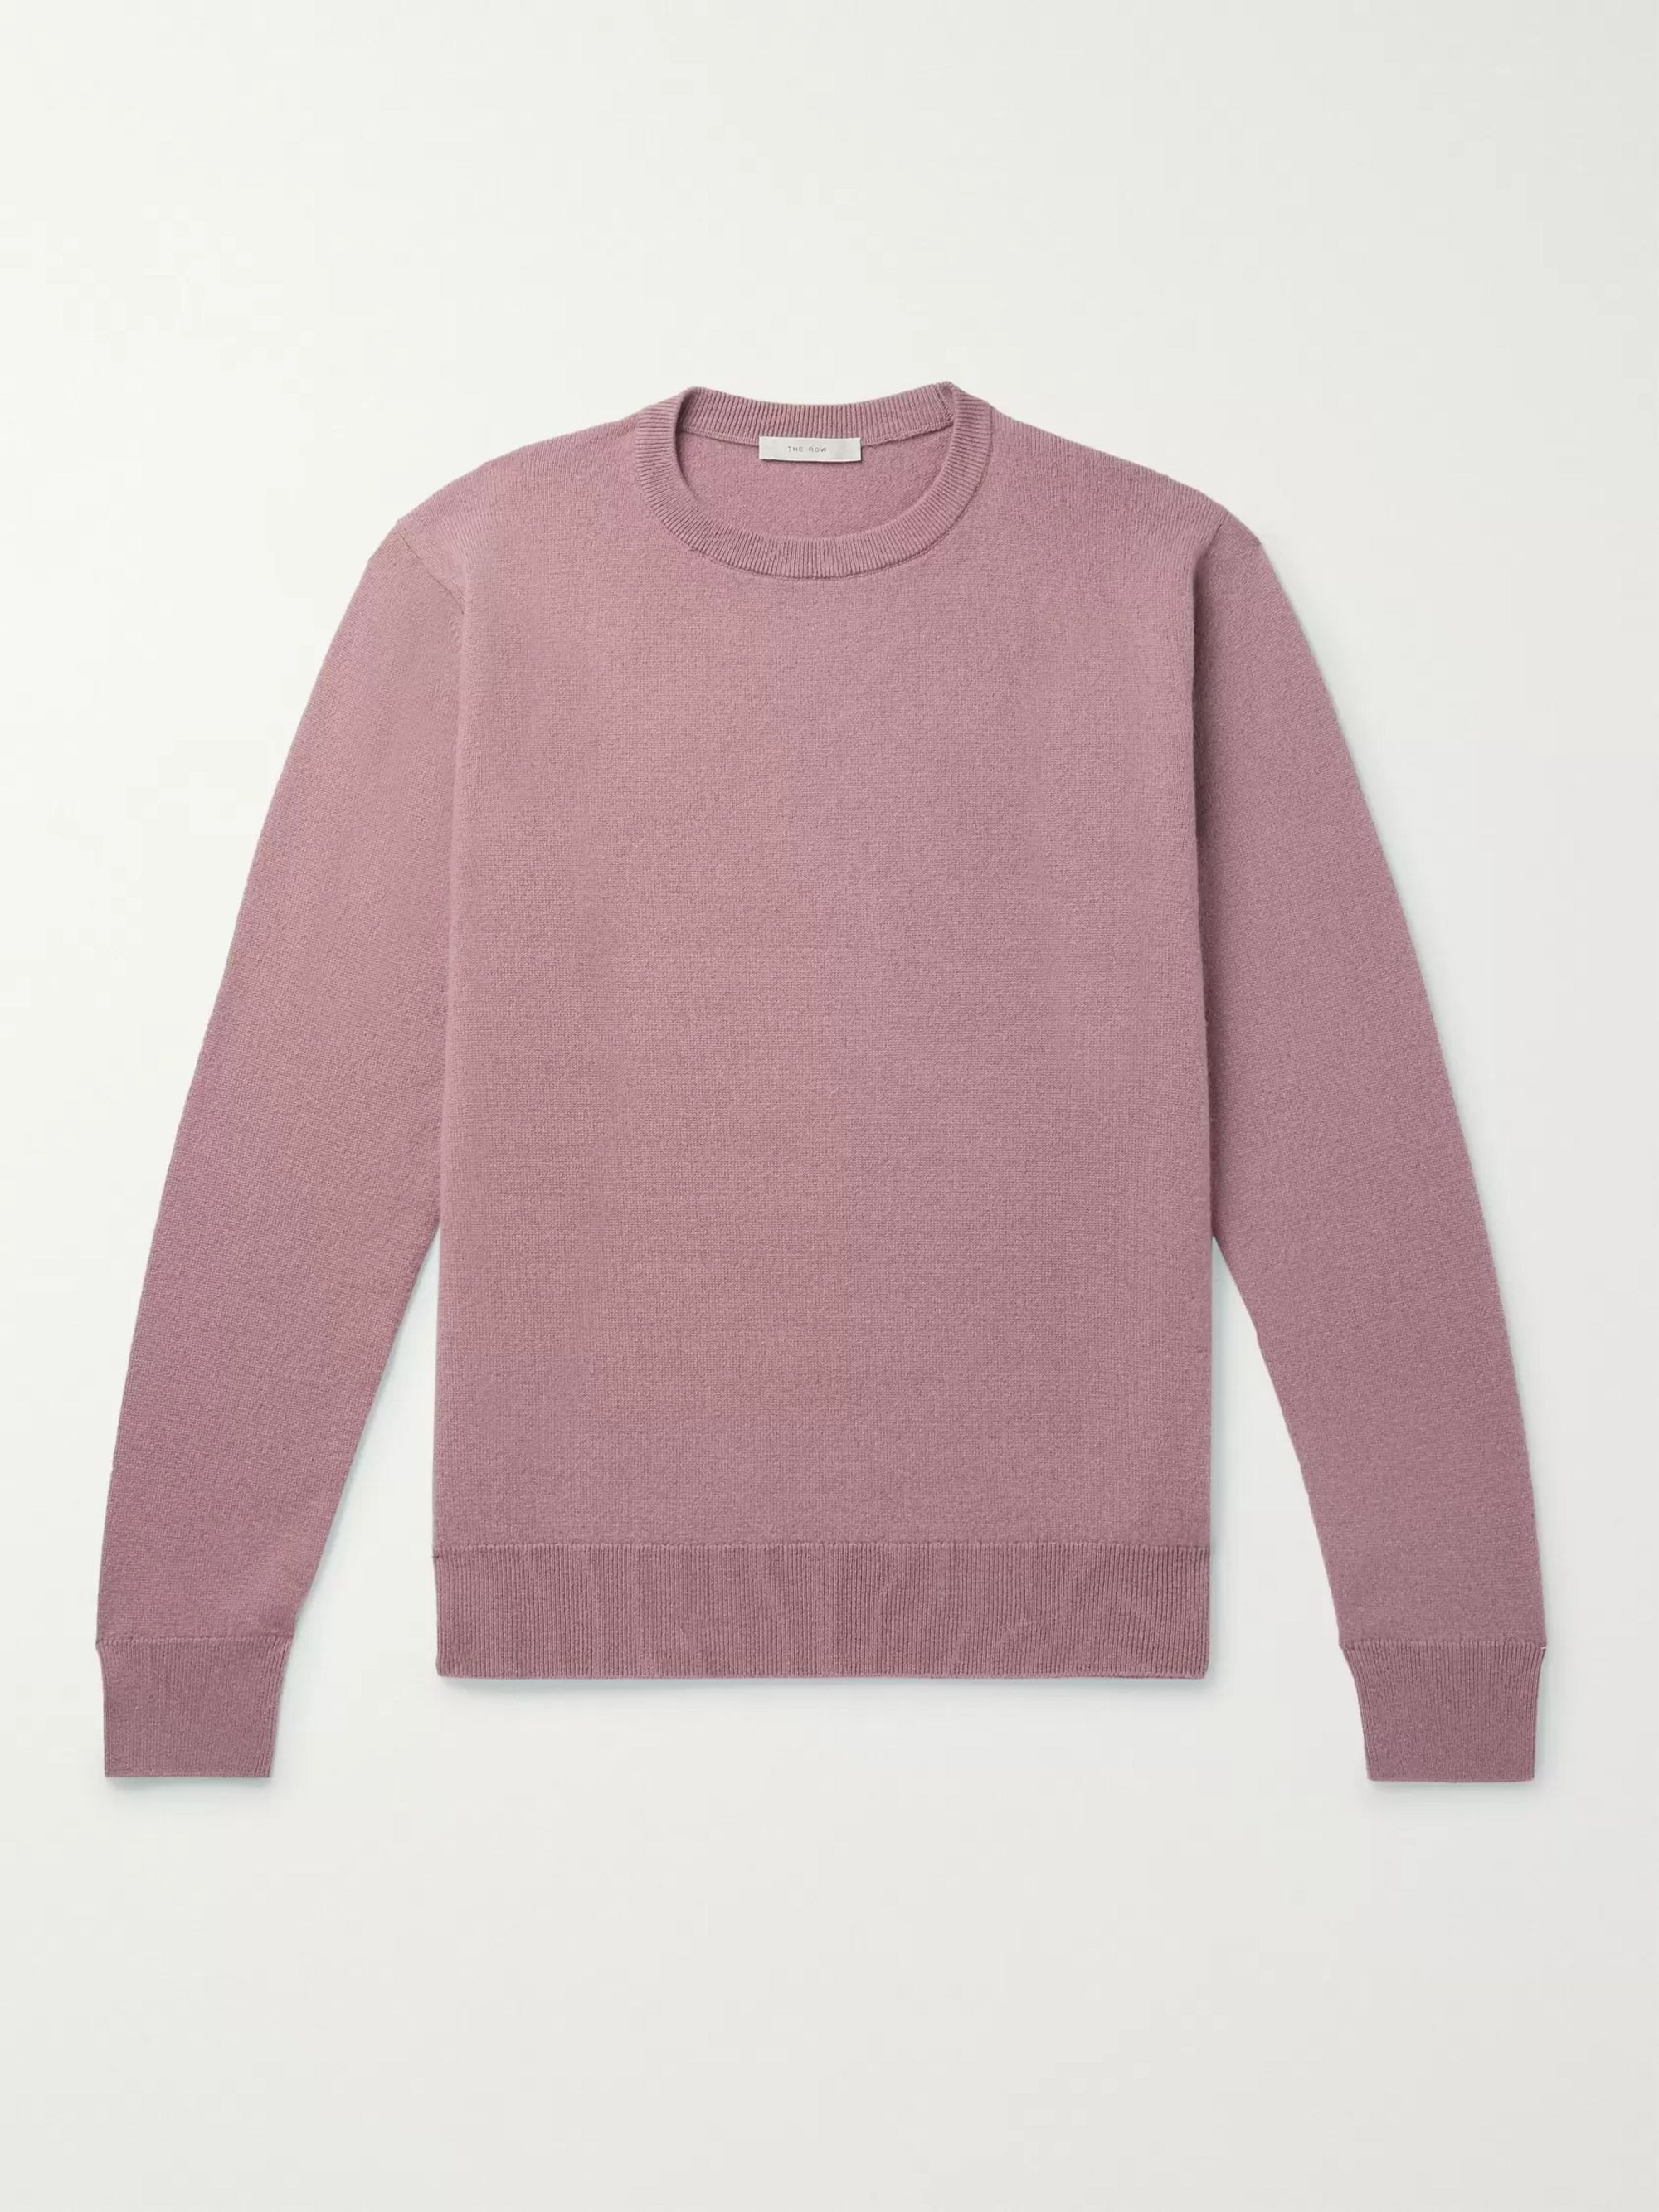 The Row Benji Slim-Fit Cashmere Sweater